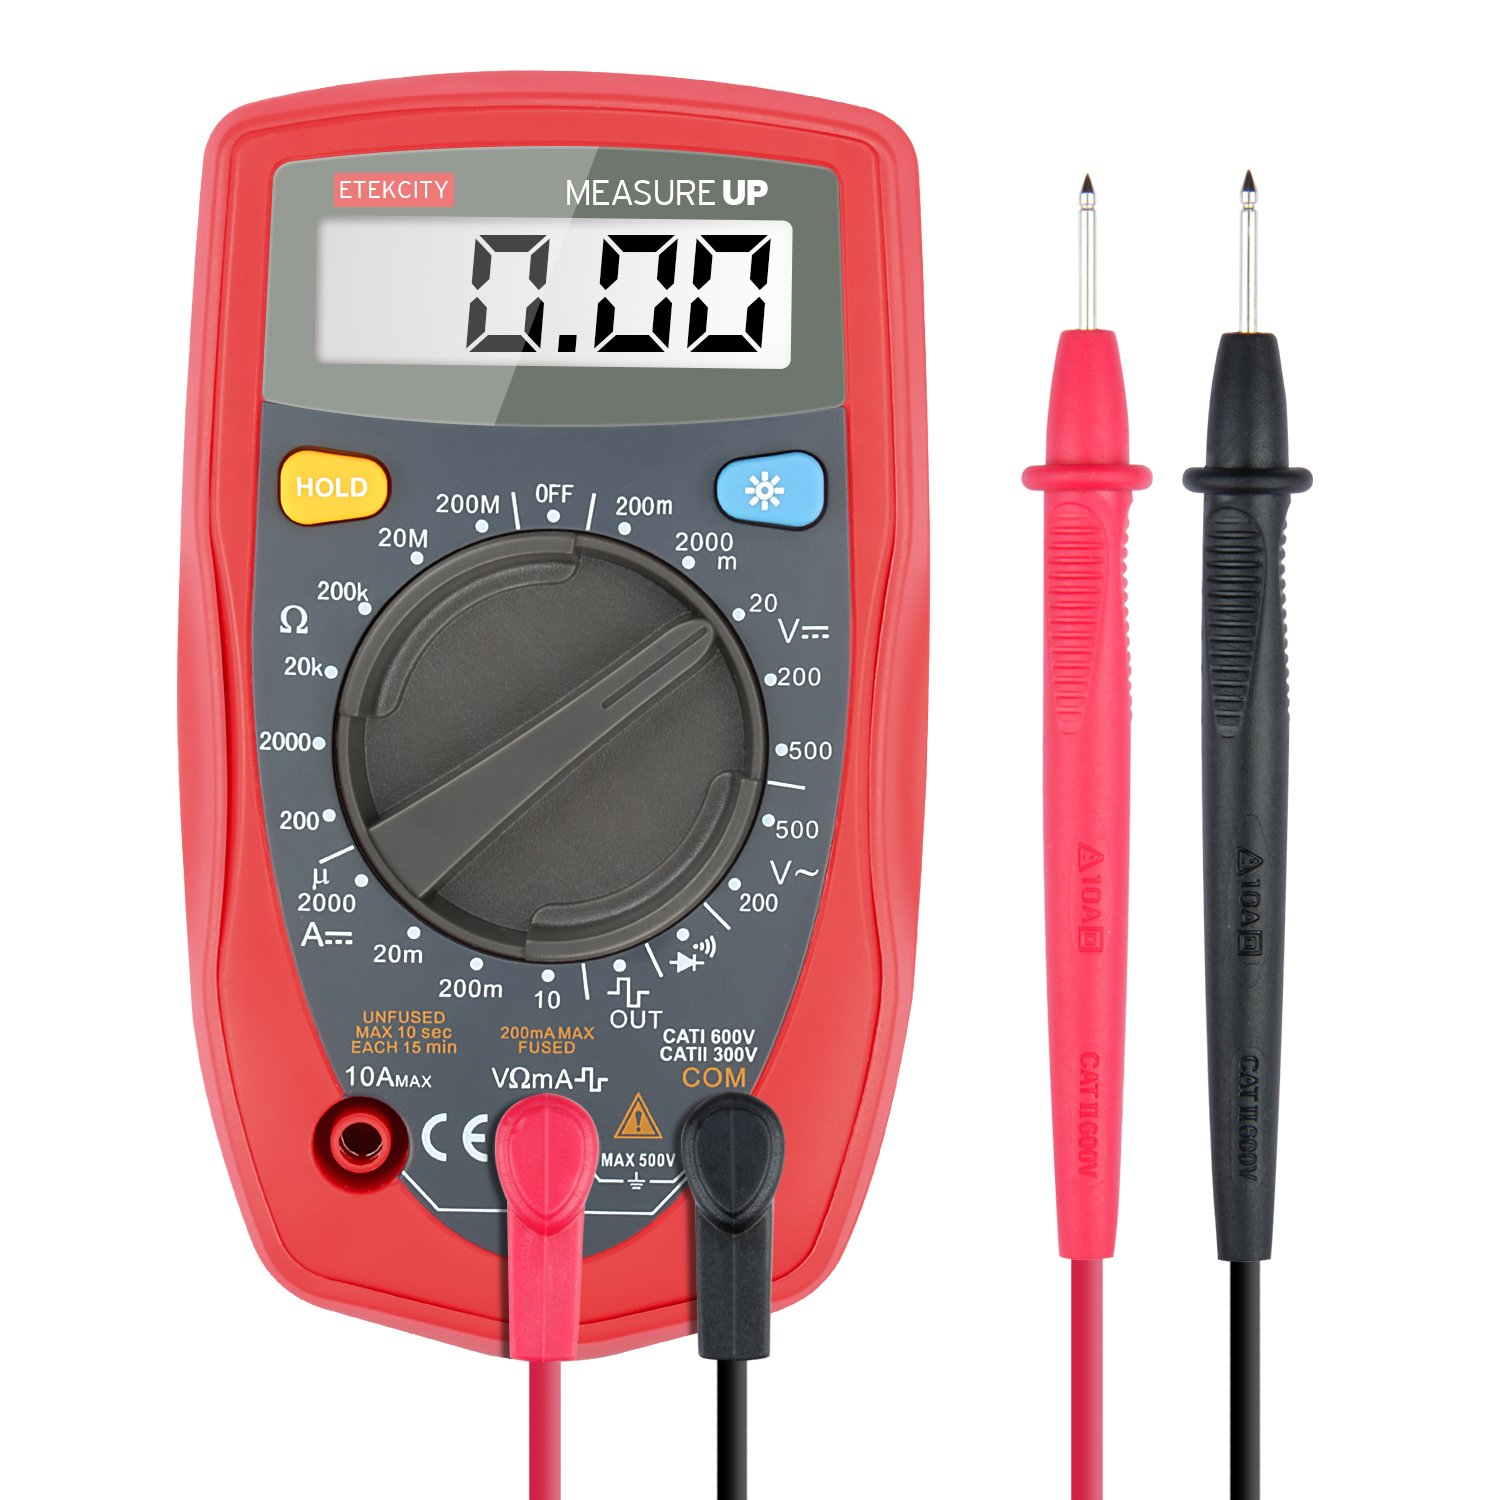 Etekcity MSR-R500 Digital Multimeter, Amp / Ohm / Volt Meter, Multi Tester w/ Diode and Continuity Test (Red)